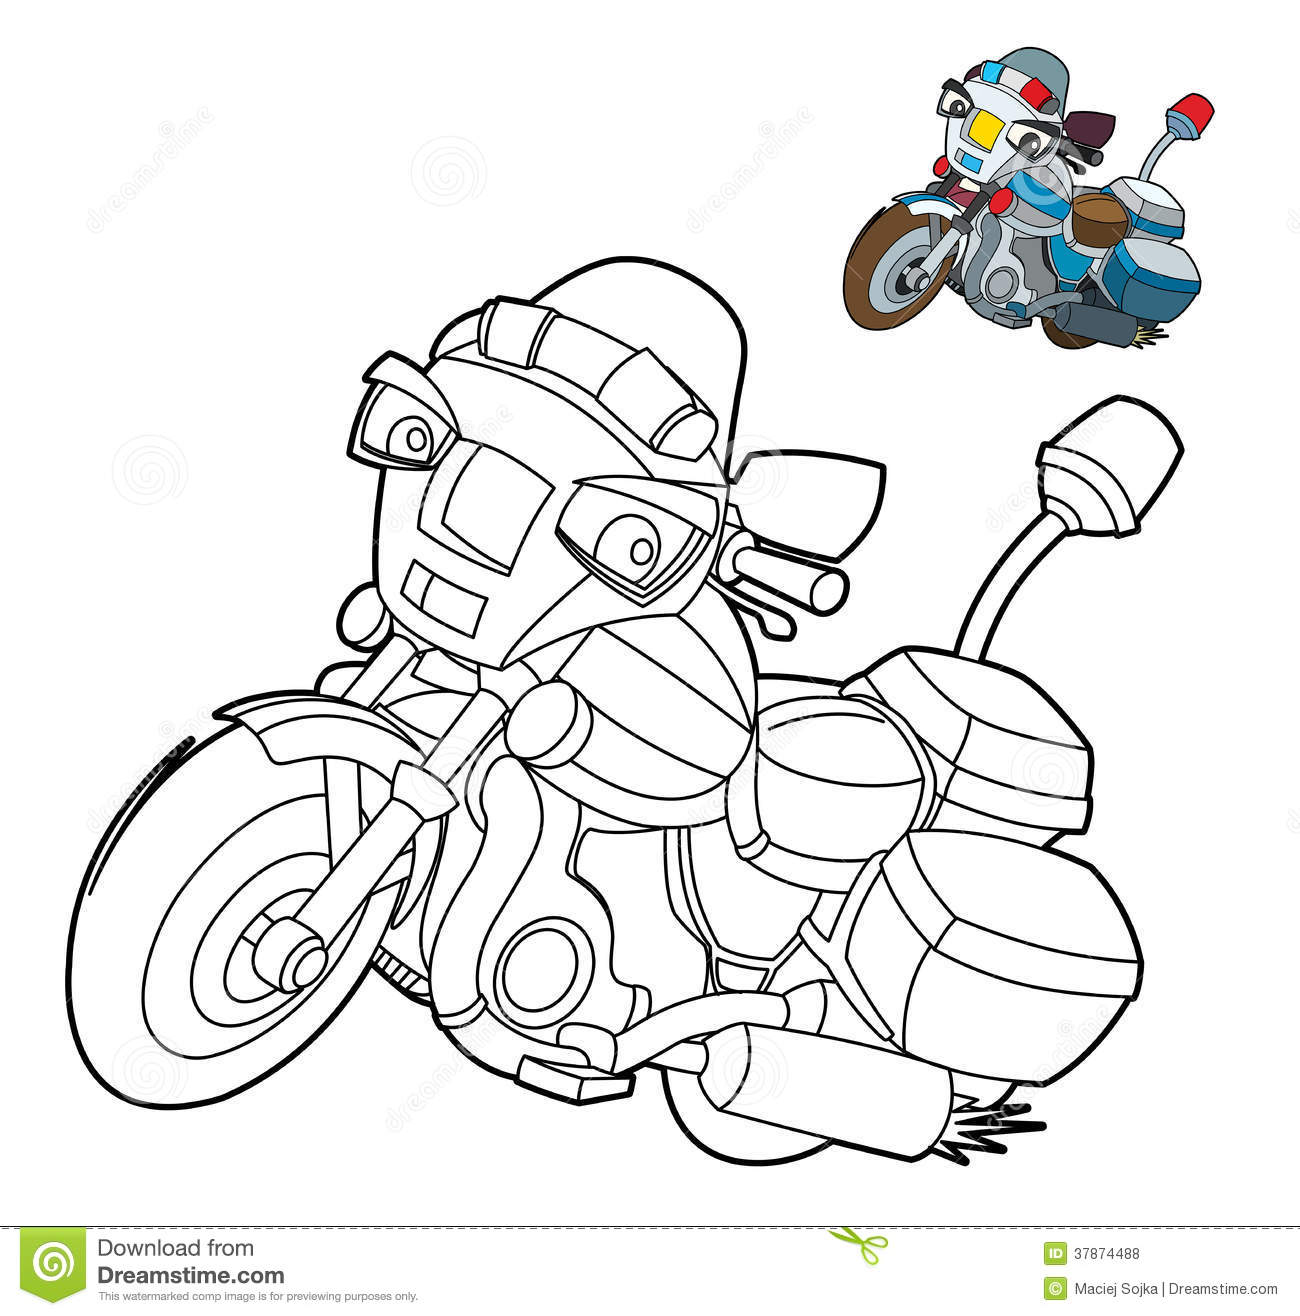 Coloring Page - Motorcycle - Illustration For The Children Stock ...